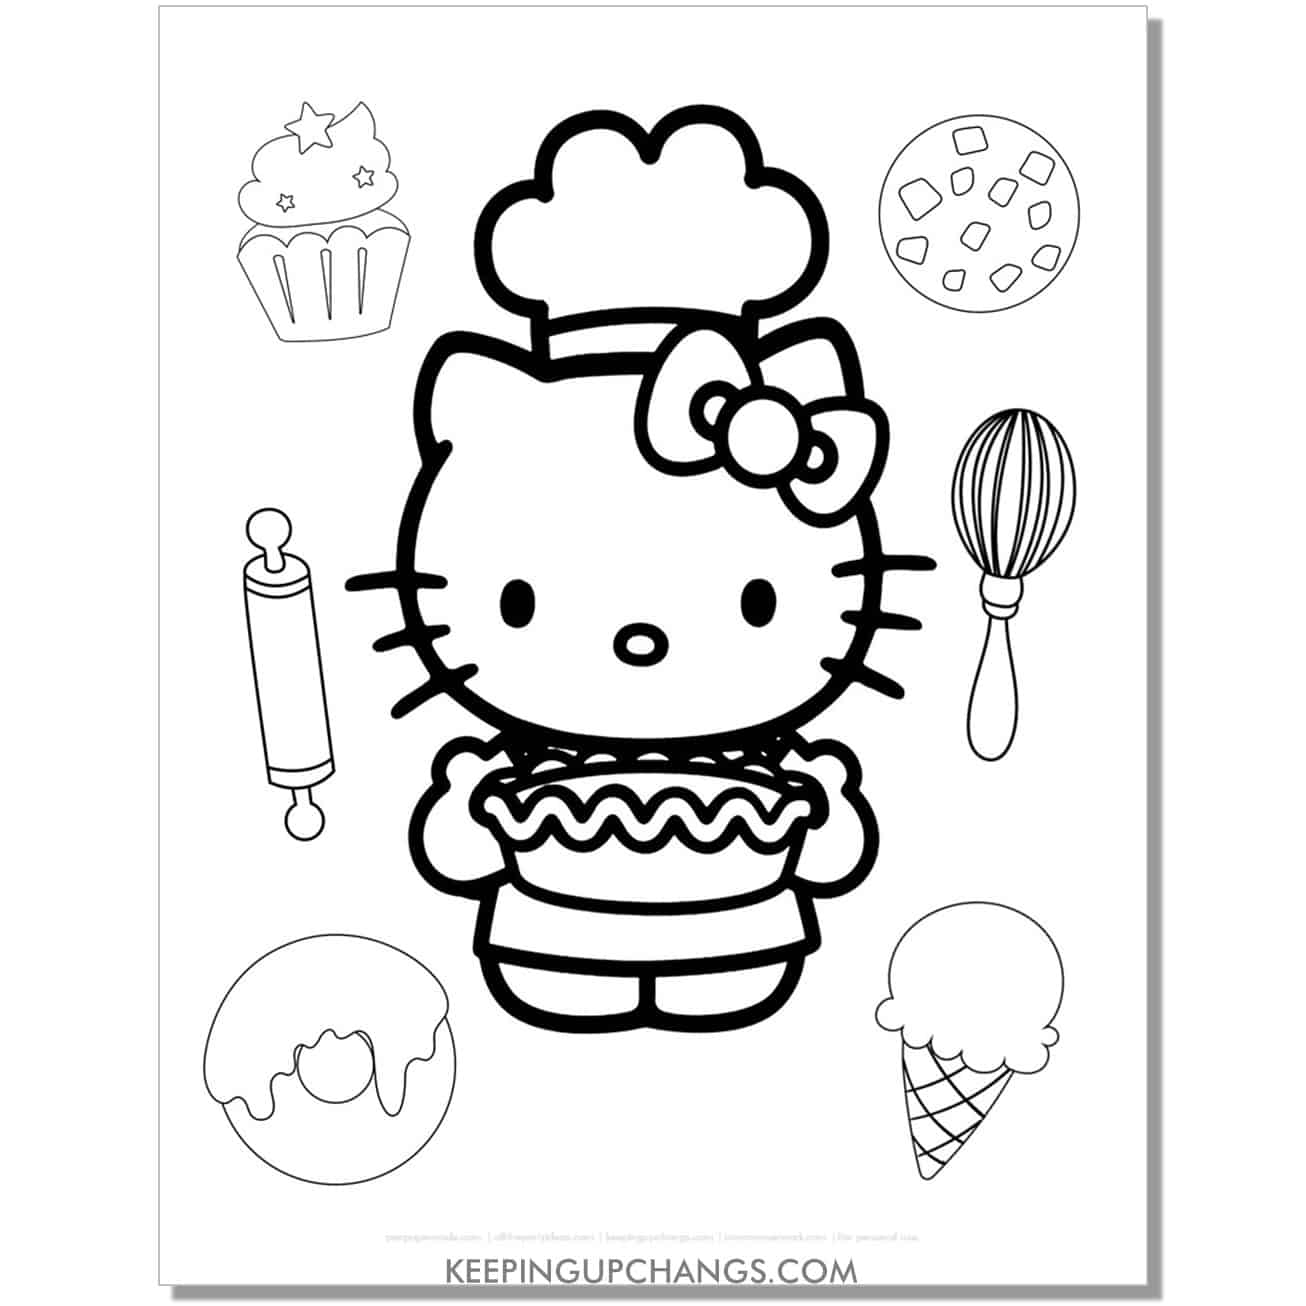 baking dessert hello kitty coloring page.